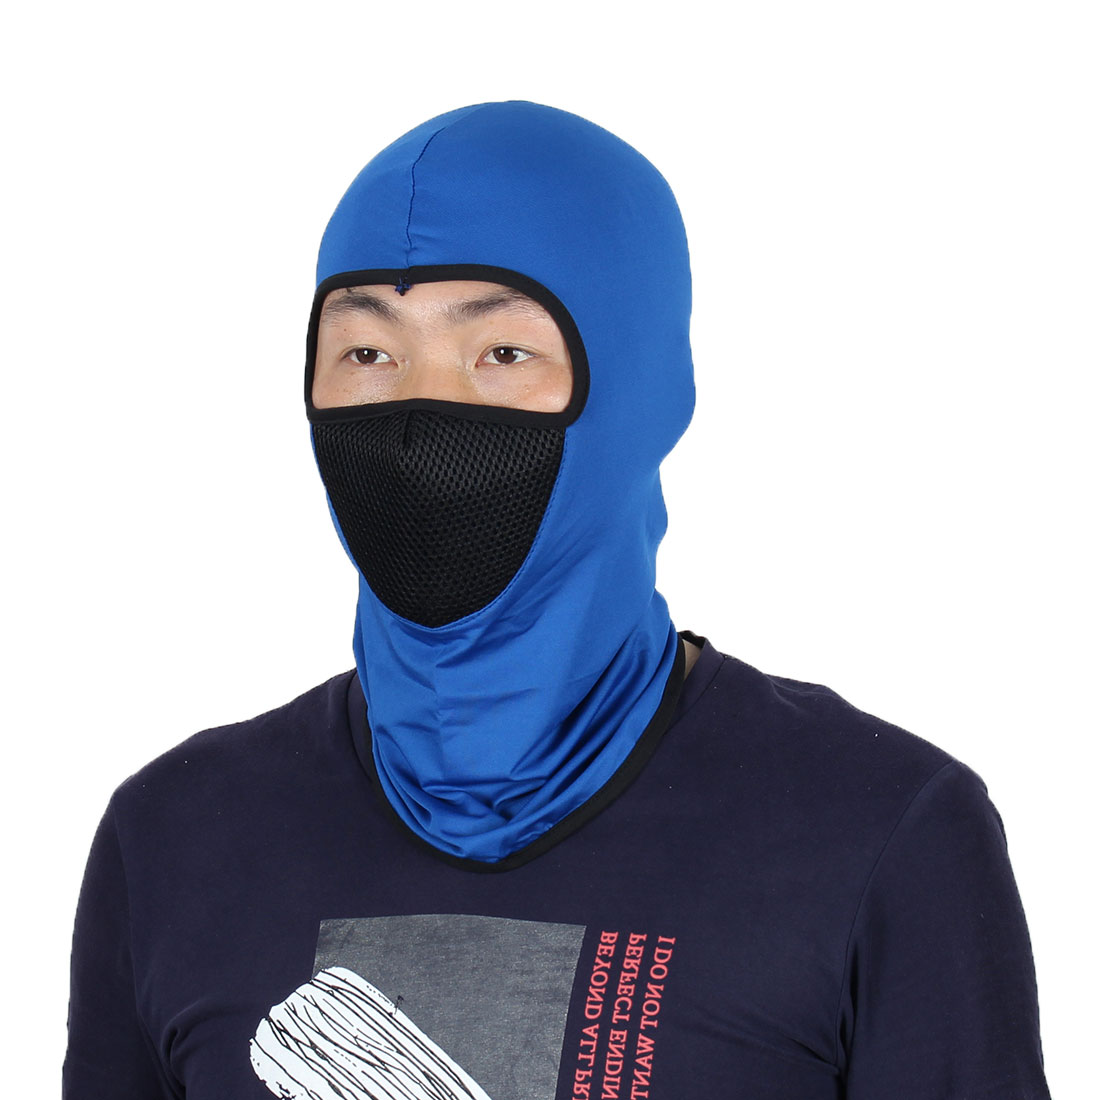 Full Face Mask Outdoor Cycling Neck Protector Hat Helmet Balaclava Dark Blue